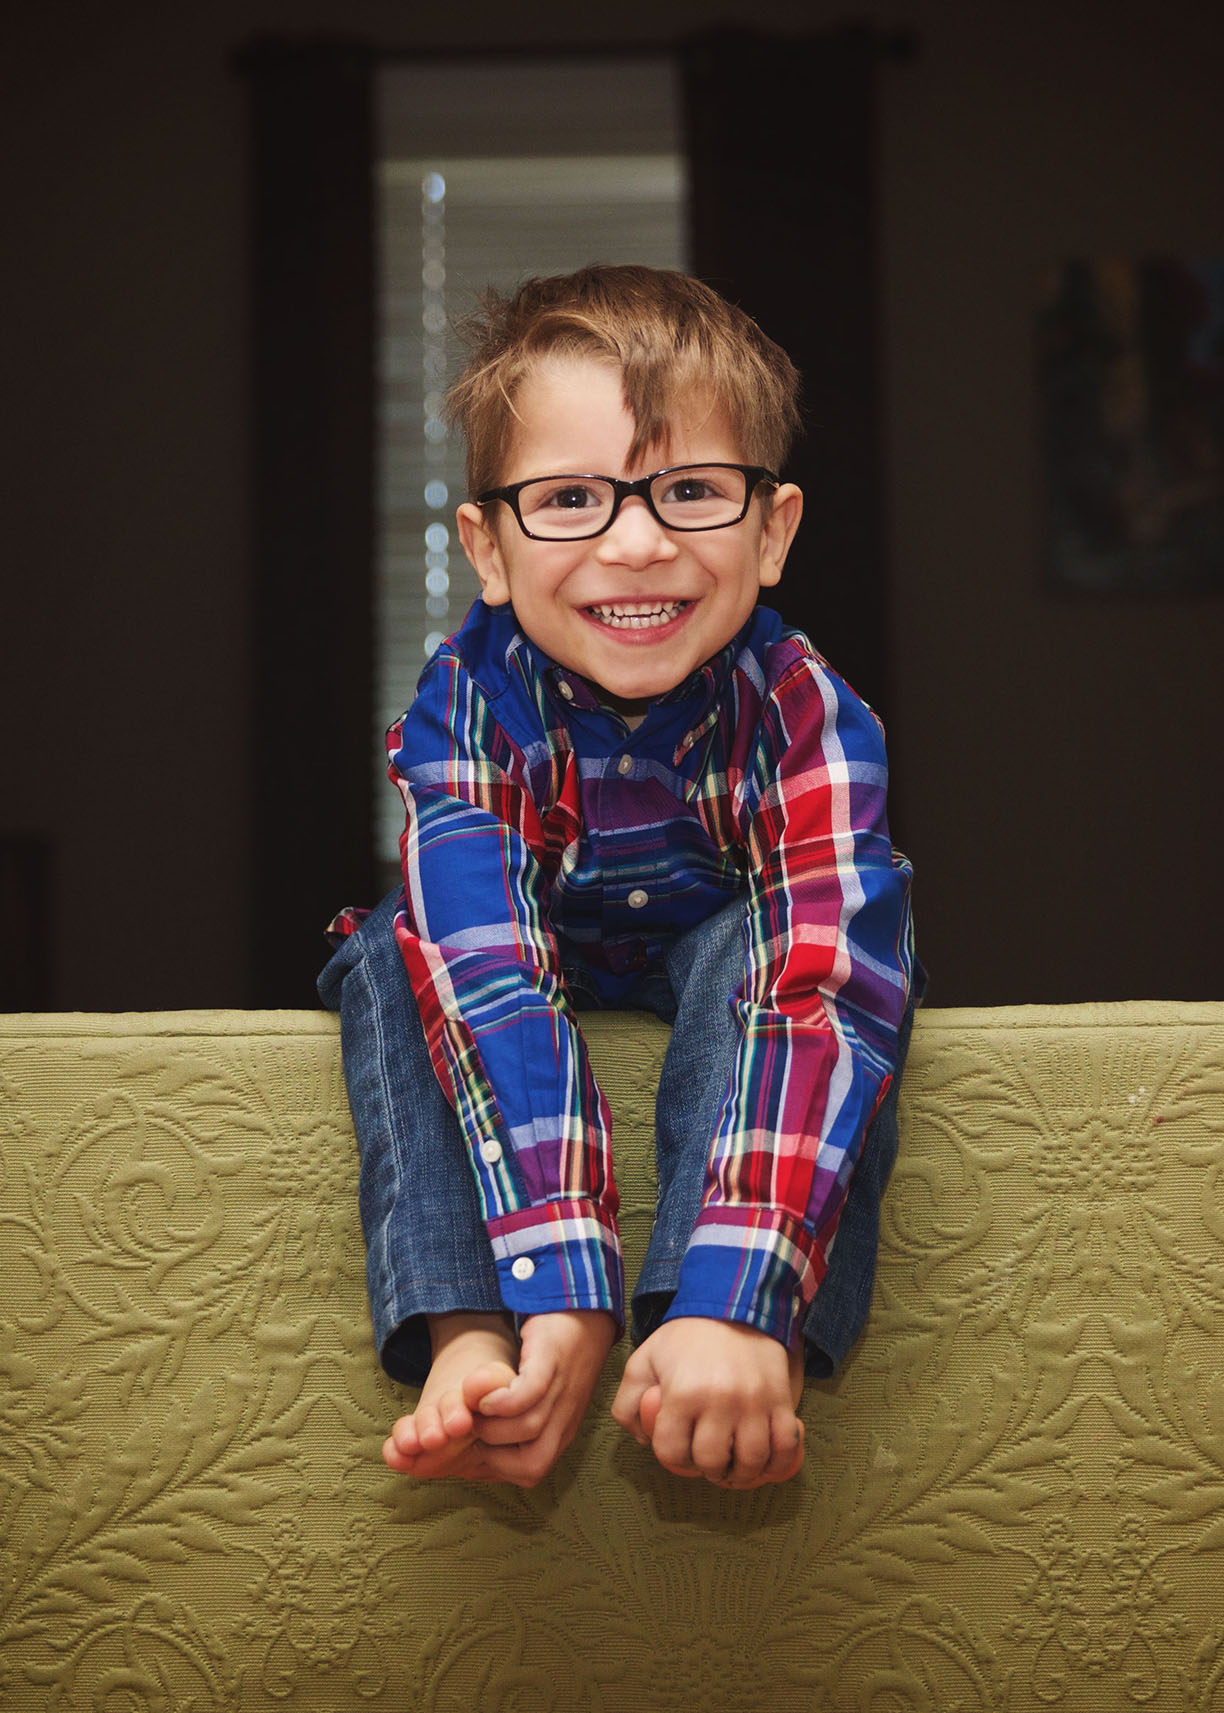 Sweet 4 year old with glasses portrait.jpg